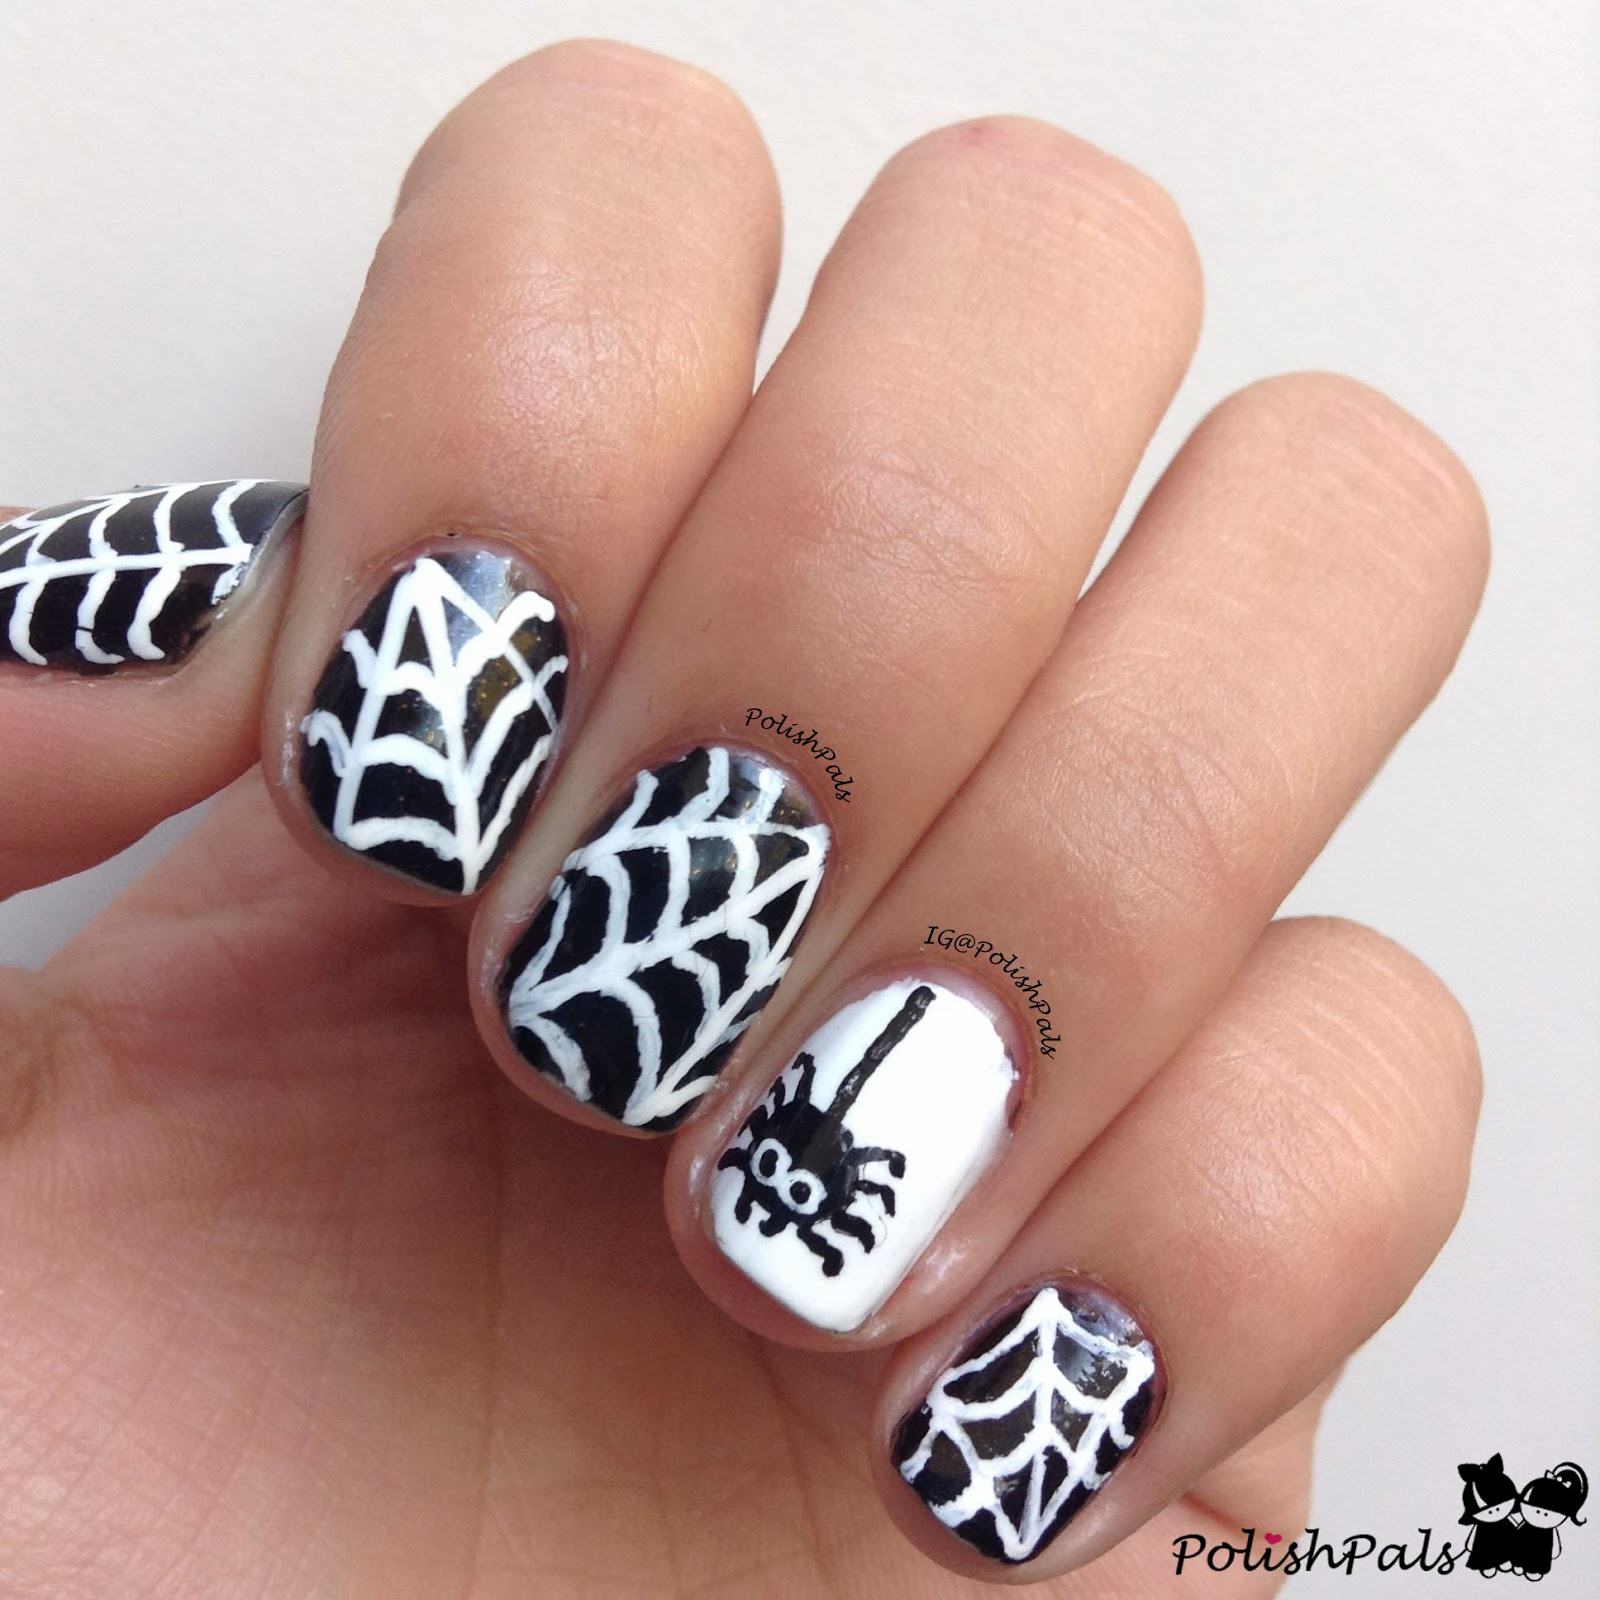 Polish Pals: Spiderweb Nail Art Tutorial